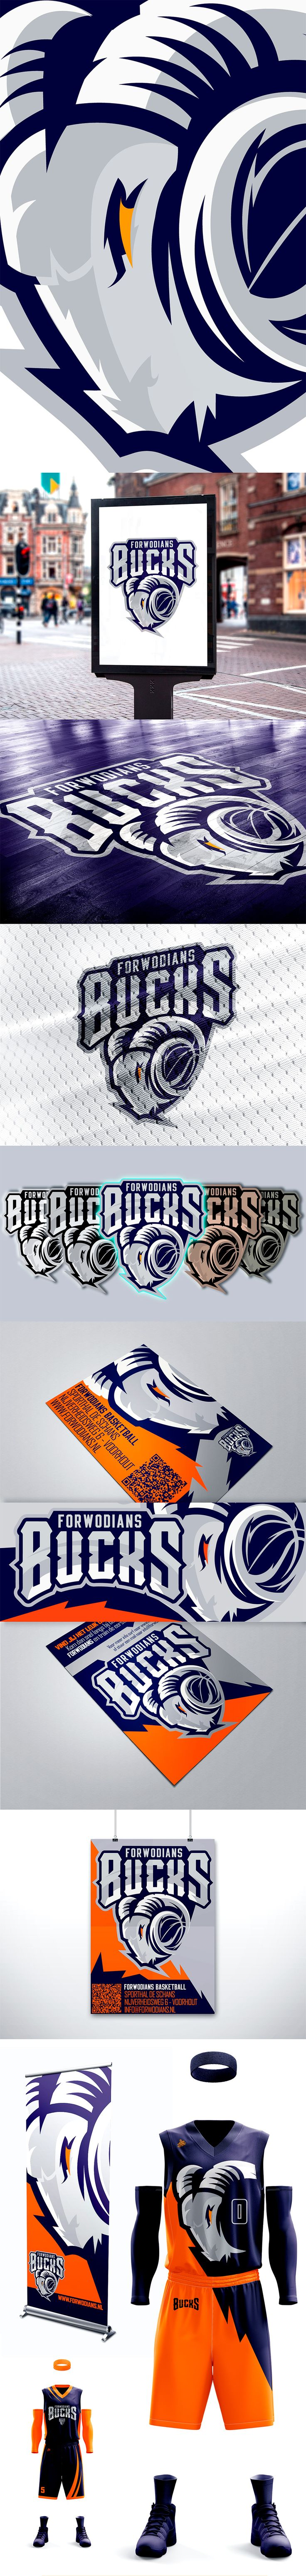 Forwodians Bucks by Yark Digital Artist